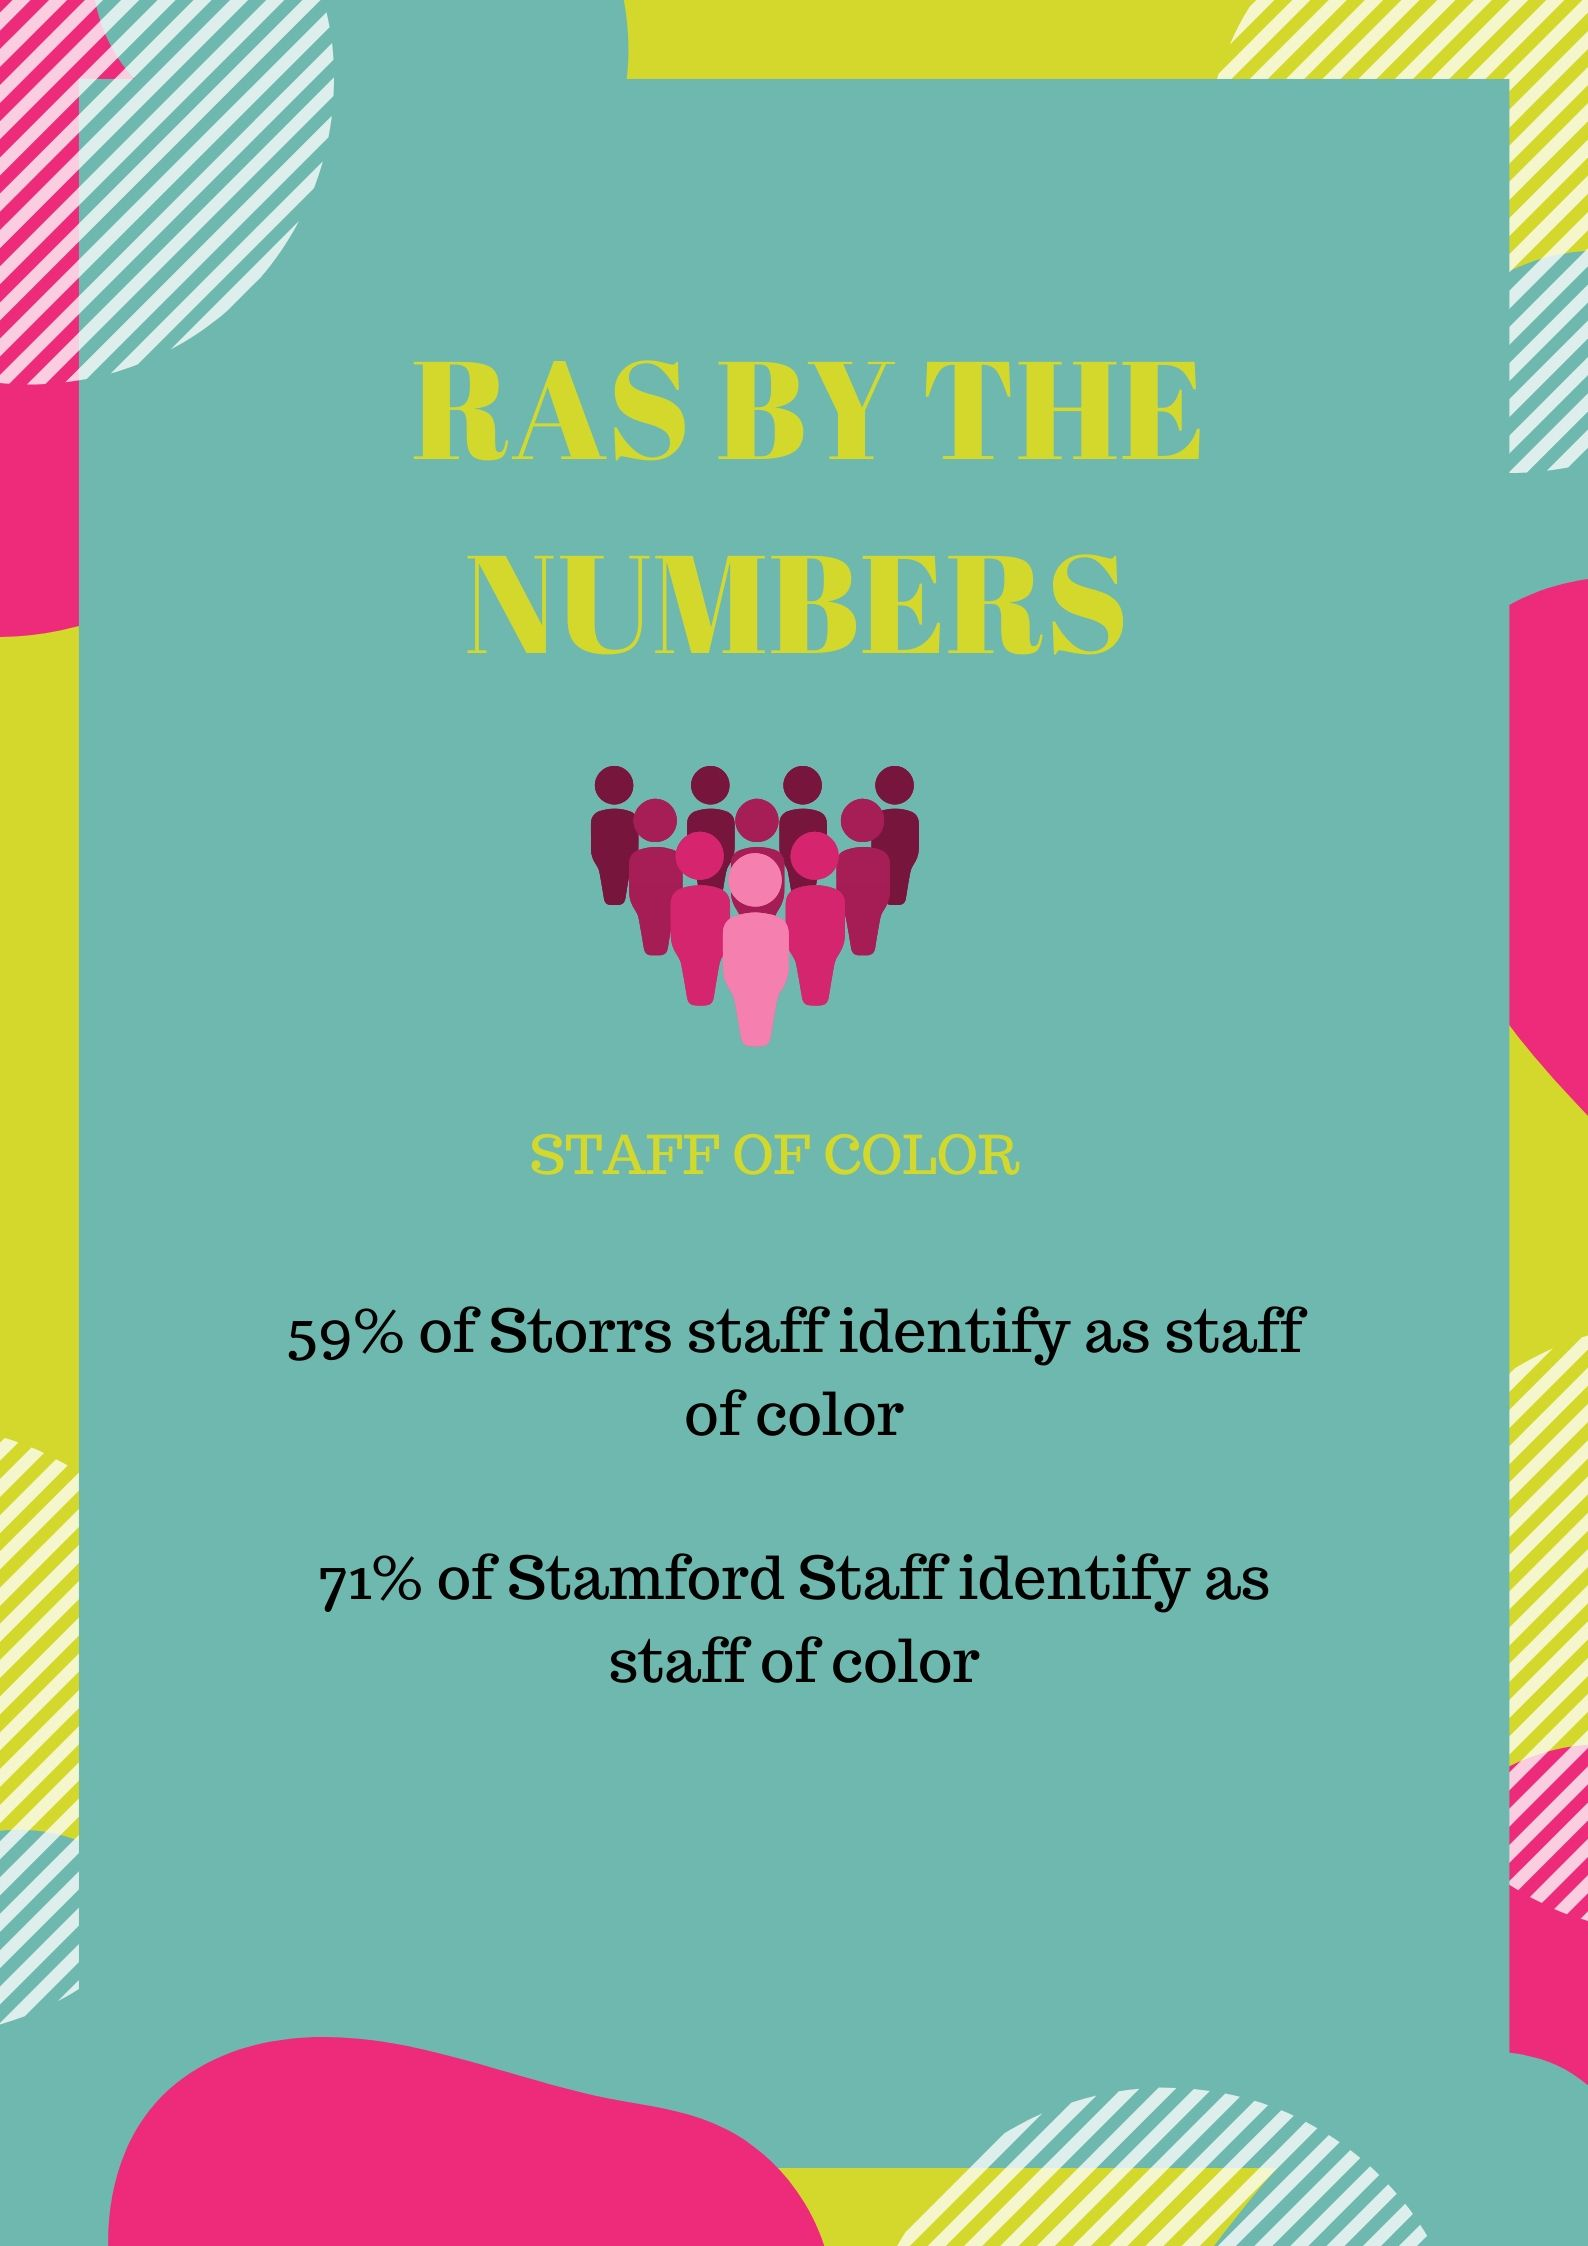 RAs by the numbers: Staff of Color. 59% of Storrs staff identify as staff of color and 71% of Stamford staff identify as staff of color.